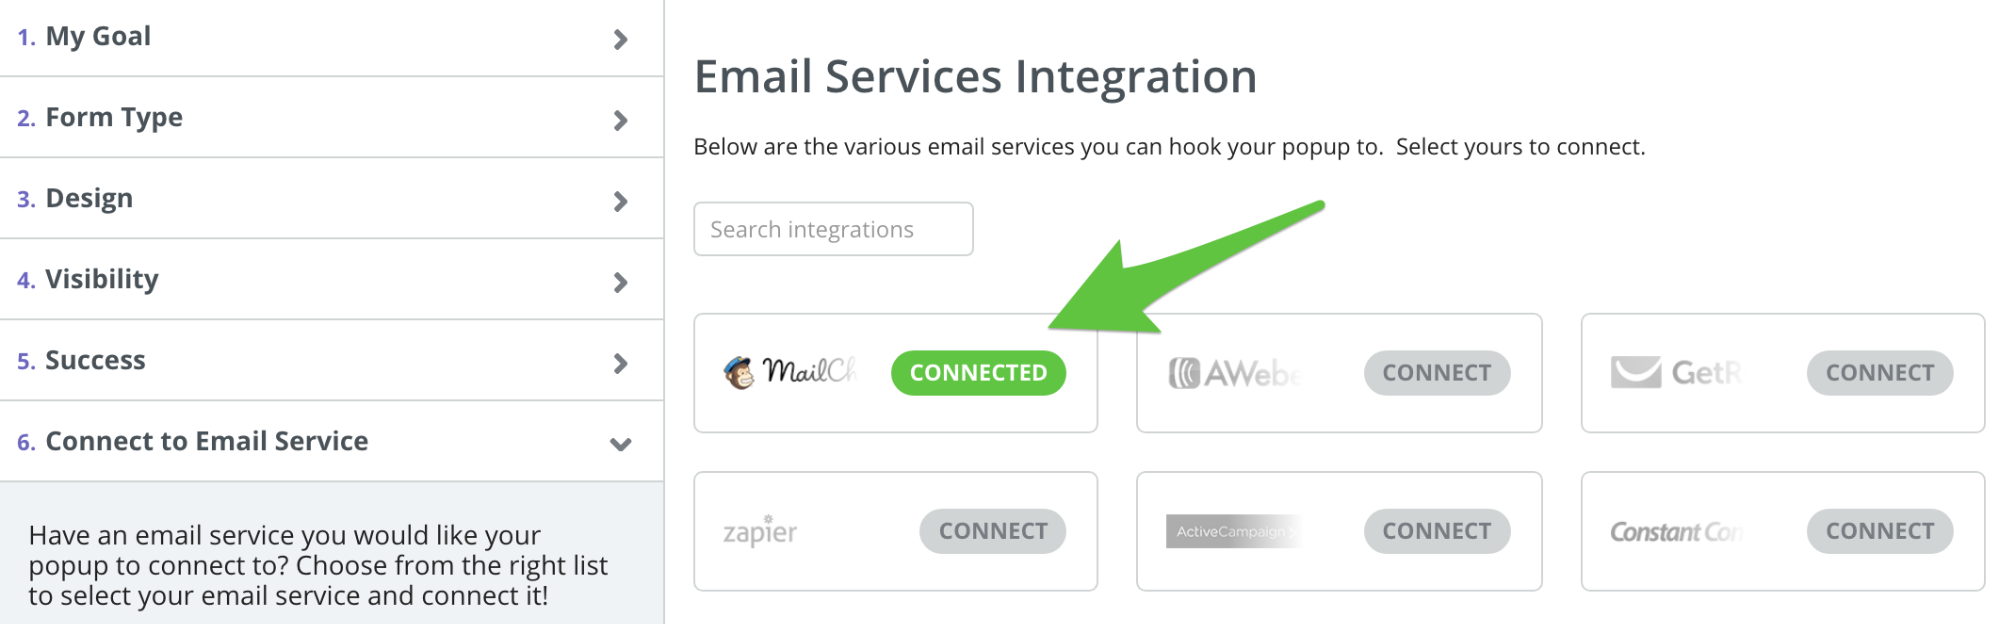 Screenshot showing email services integration page for a sumo popup